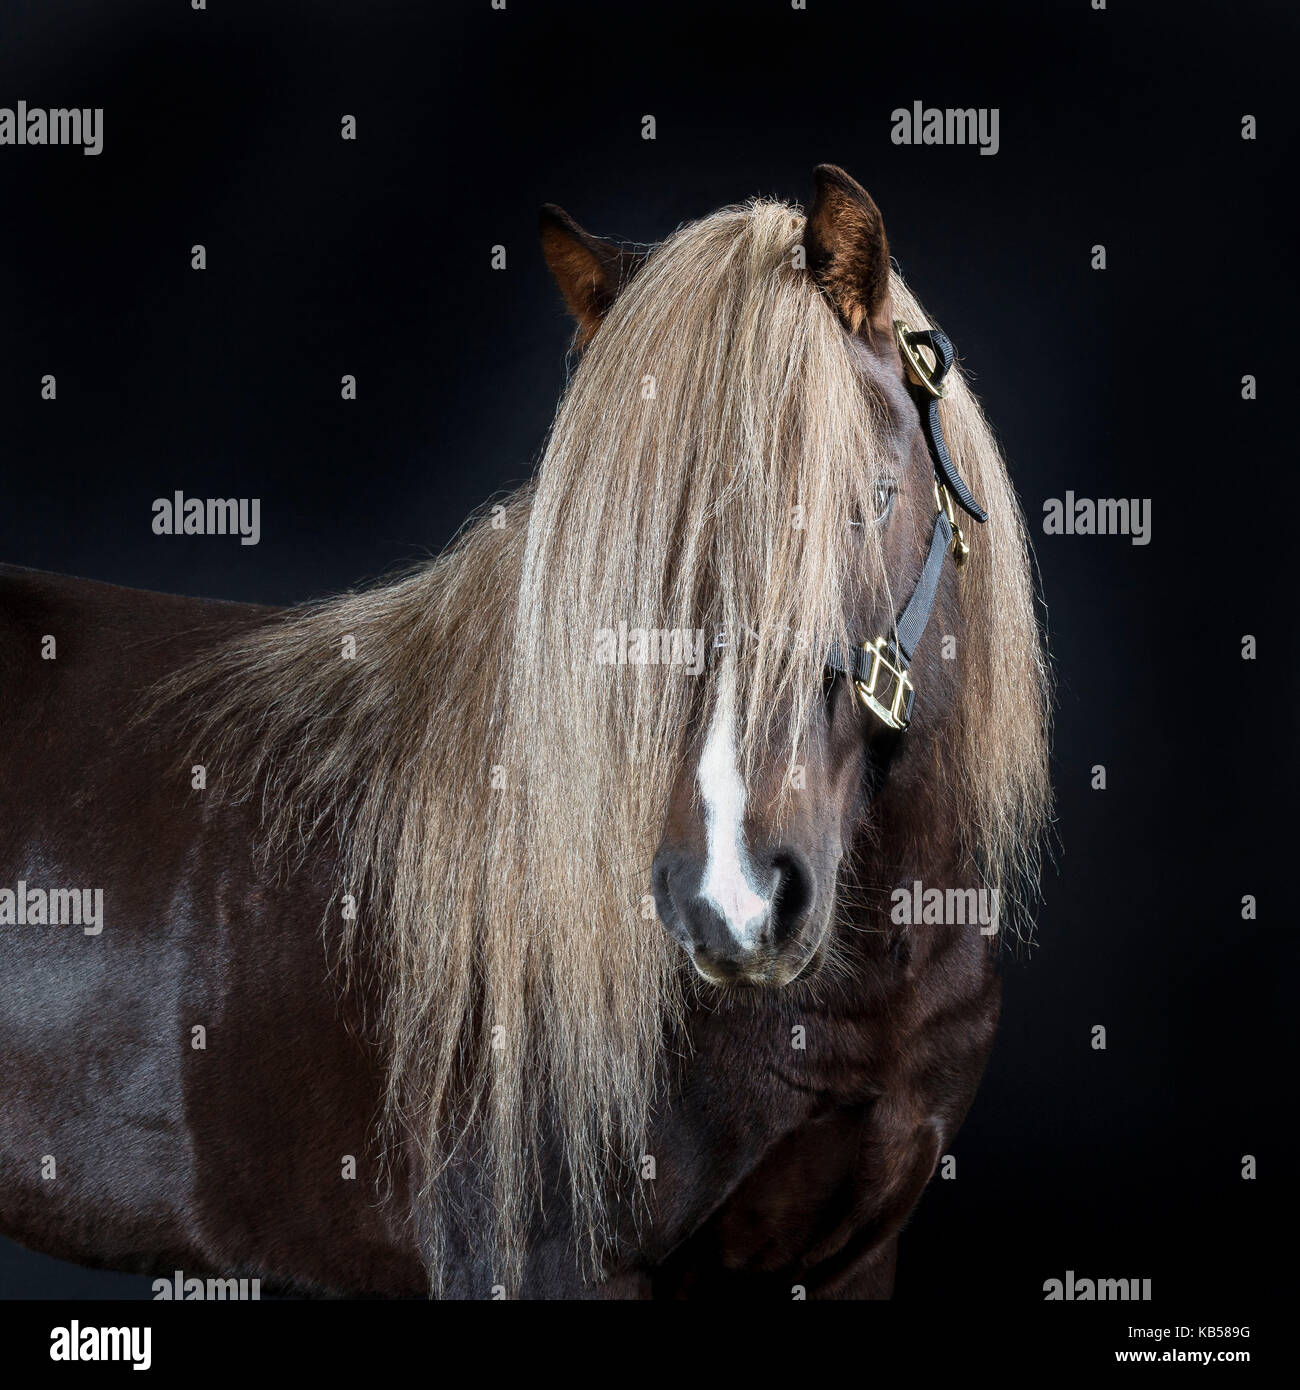 Portrait of Icelandic Horse, Iceland The Icelandic horse is a purebred with various unique qualities. In Iceland - Stock Image